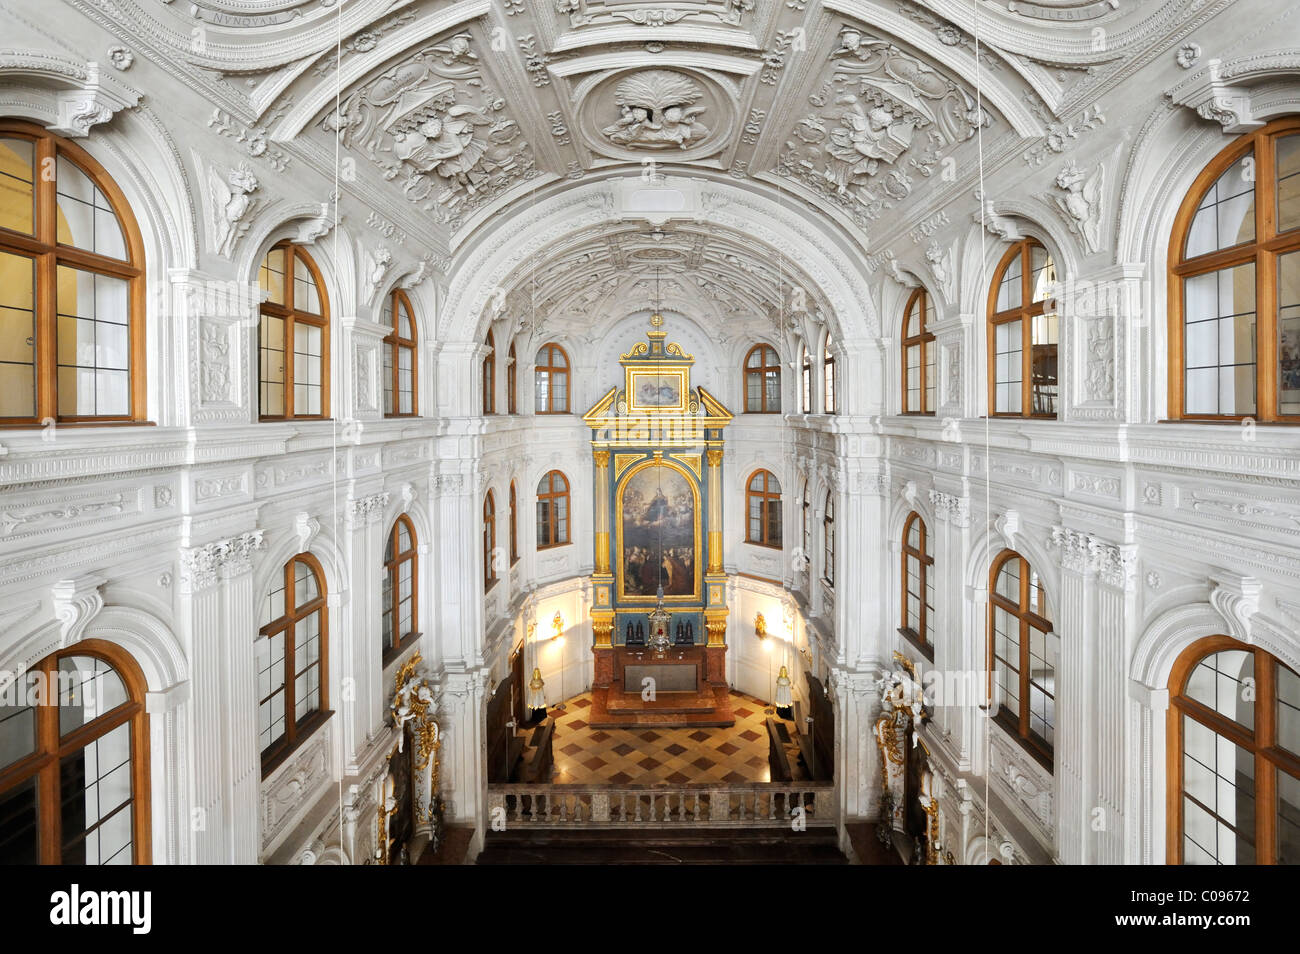 Court chapel, Munich Residence, home of the Wittelsbach regents until 1918, Munich, Bavaria, Germany, Europe - Stock Image